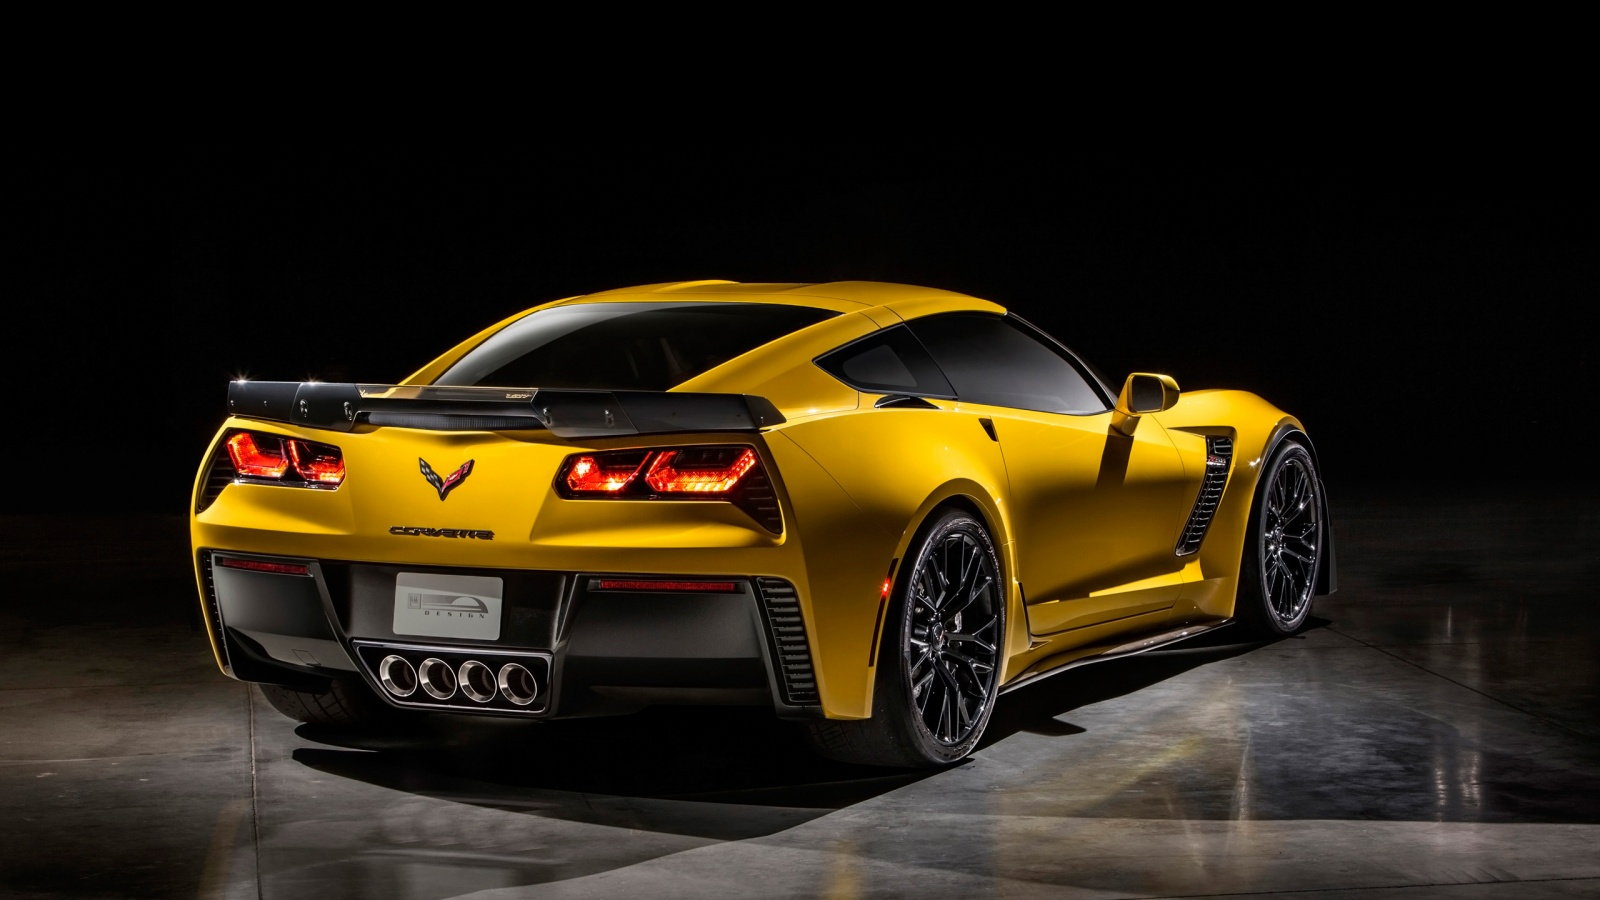 2015 Chevrolet Corvette Z06 2 Wallpaper HD Car Wallpapers 1600x900